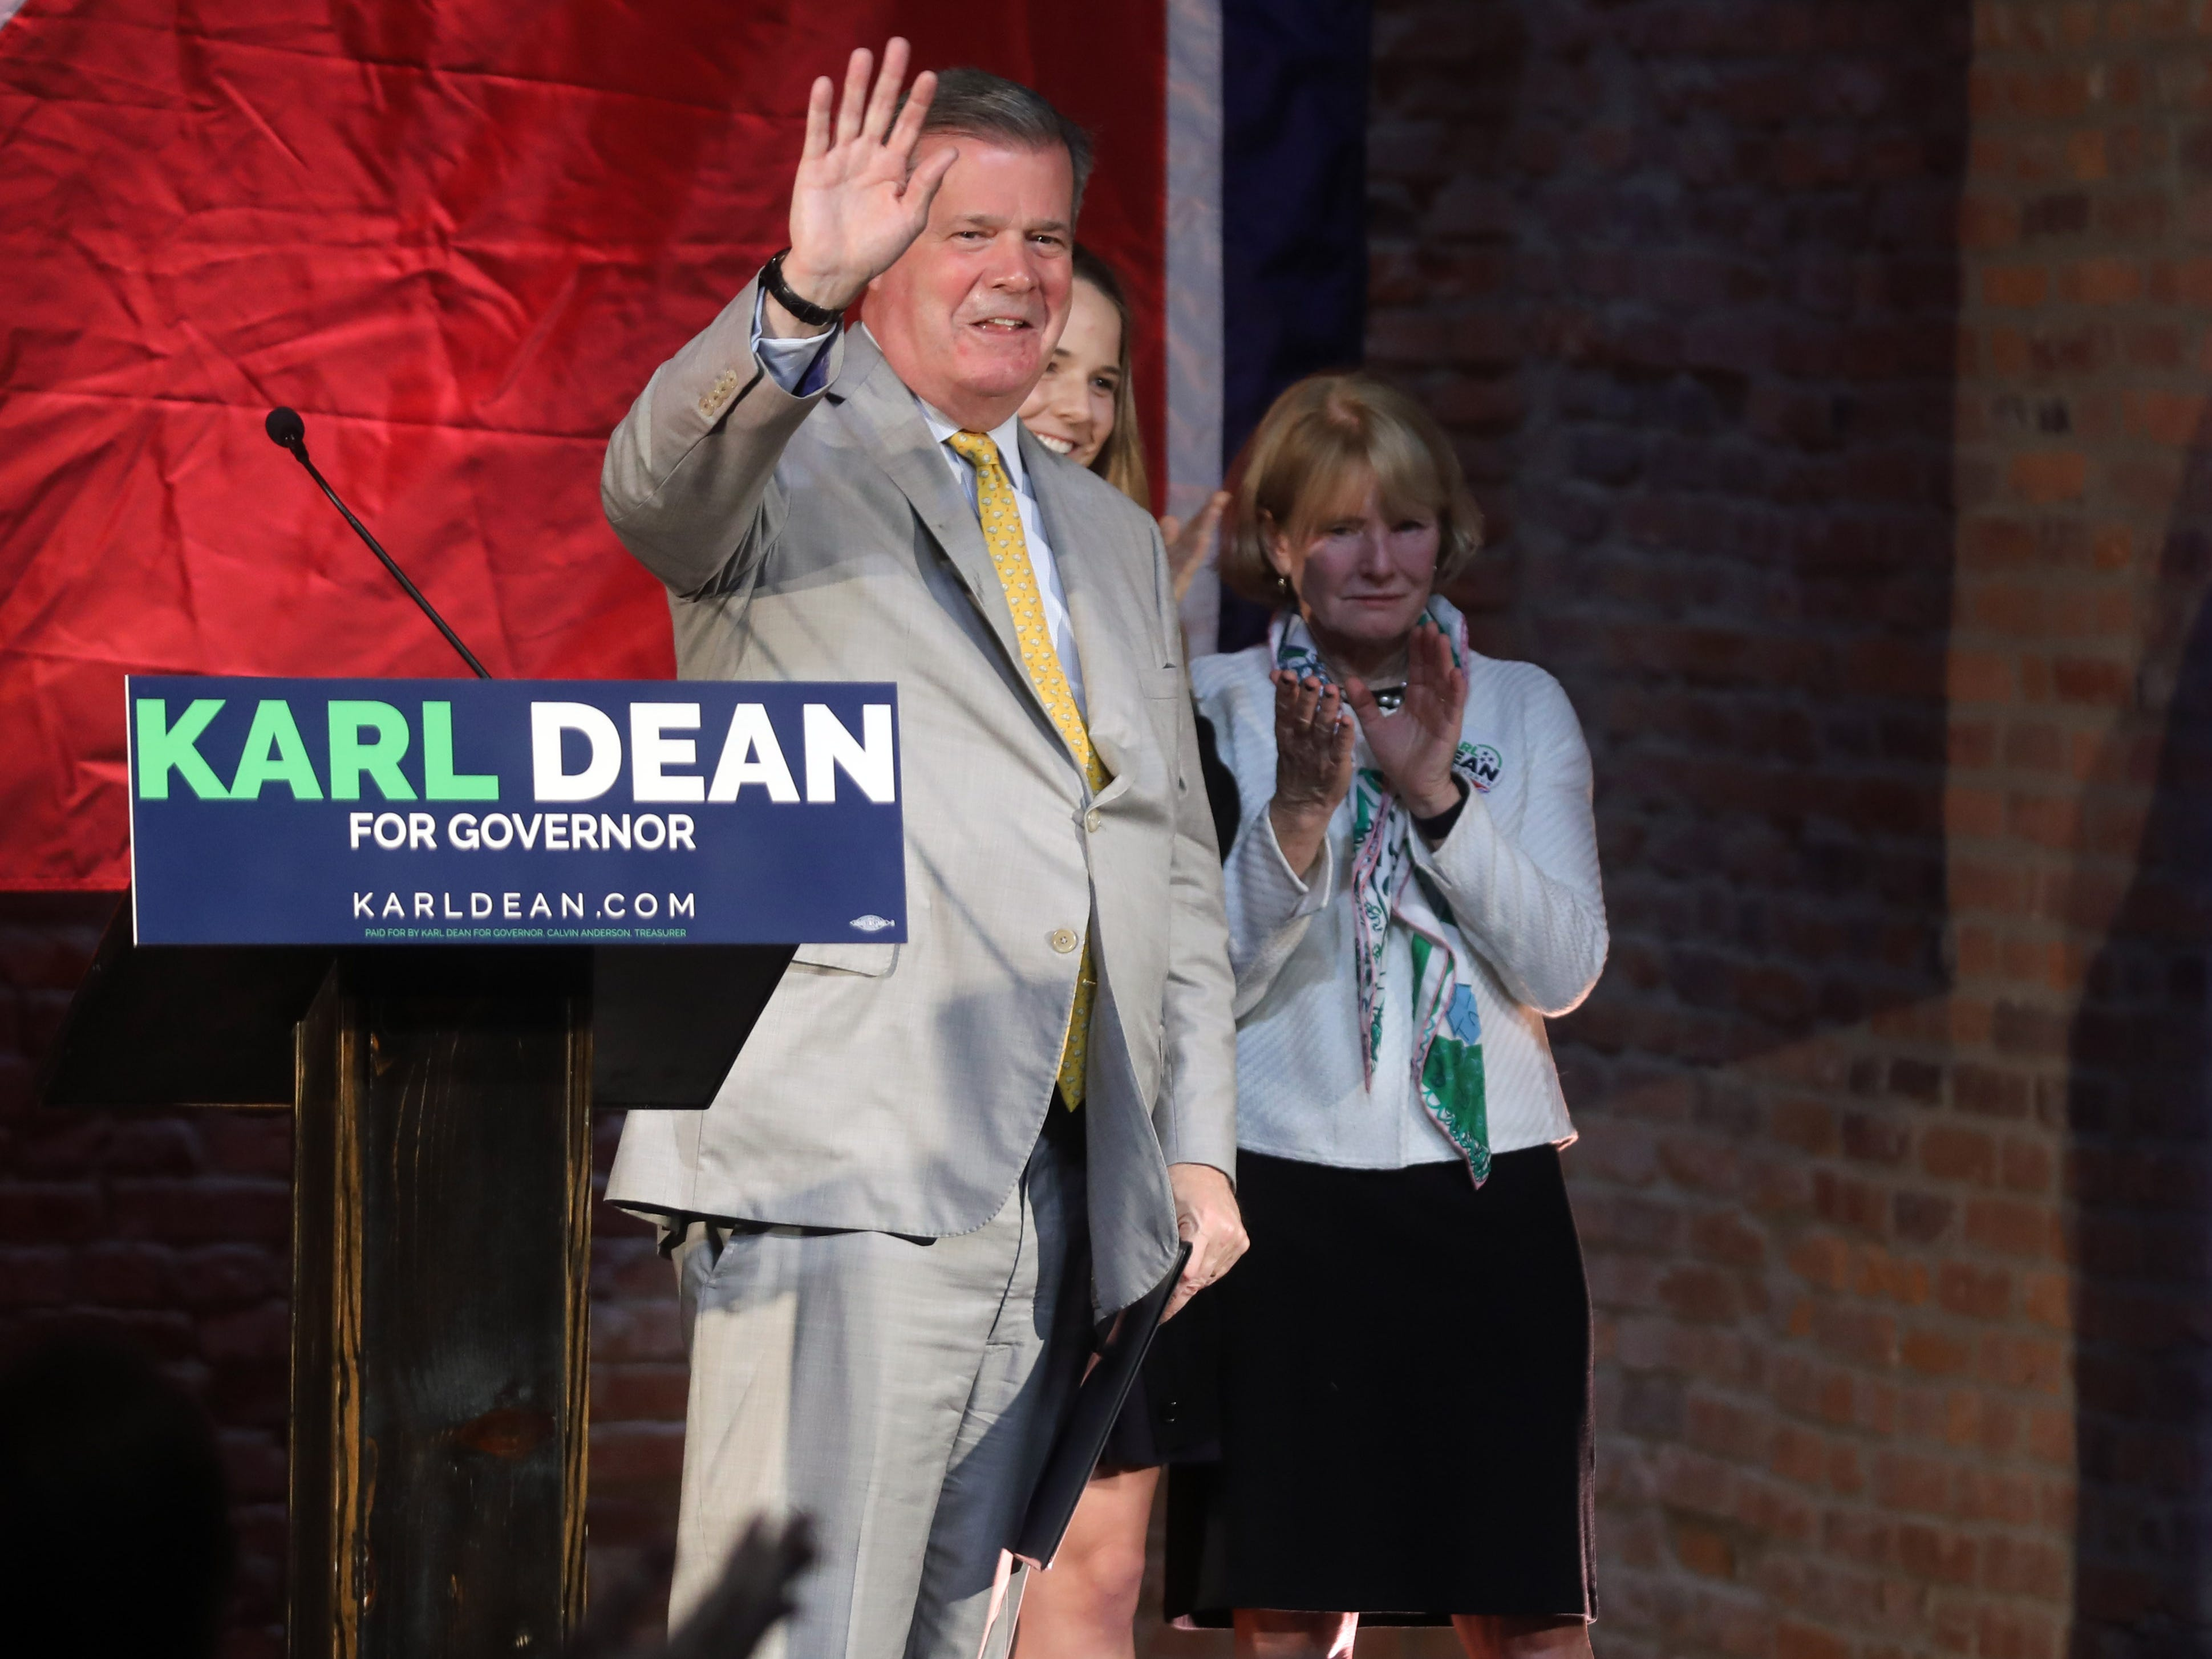 Democratic gubernatorial candidate Karl Dean thanks supporters during a campaign party held at Clementine Tuesday, November 6, 2018.